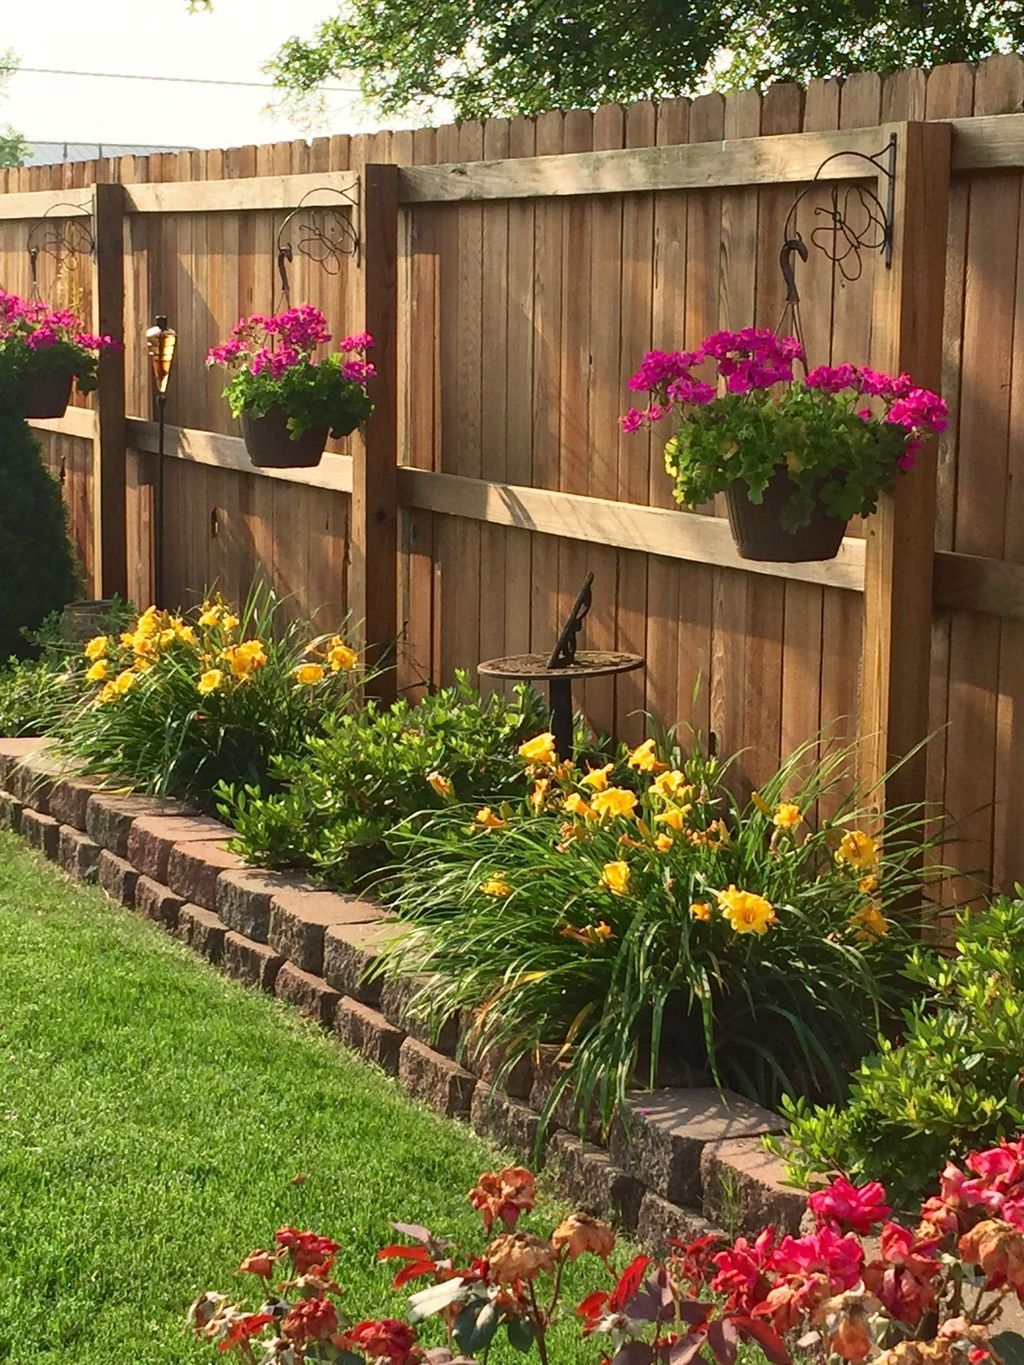 100+ Backyard Landscaping Ideas On A Budget | Small ... on Backyard Garden Ideas On A Budget id=71244